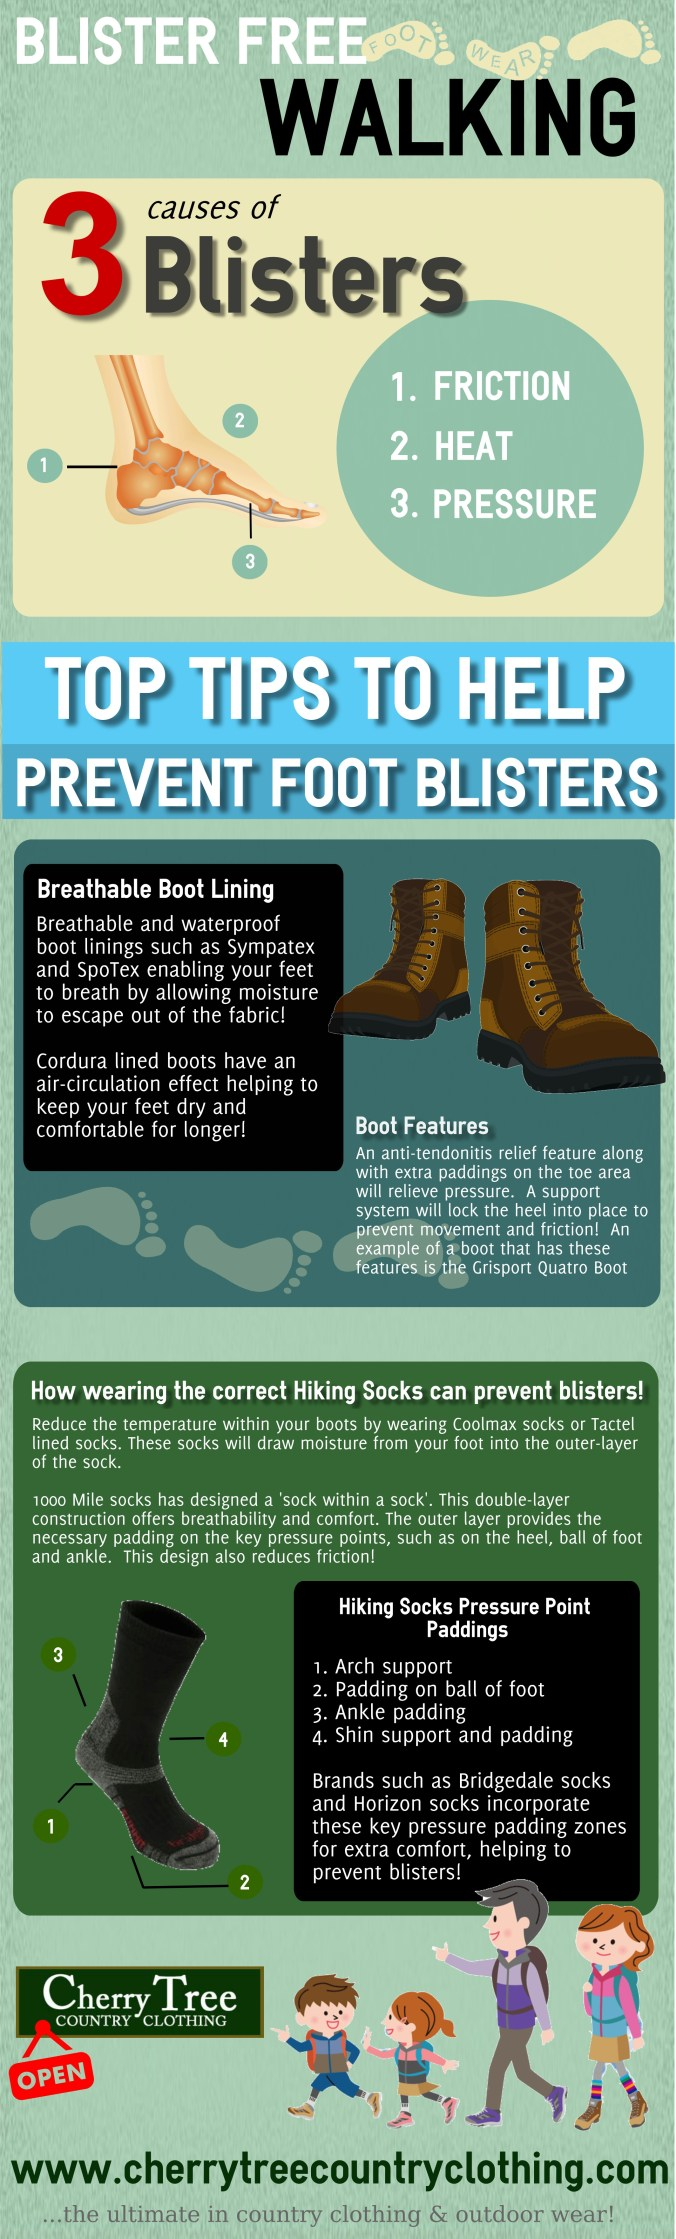 Blister Prevention when Walking